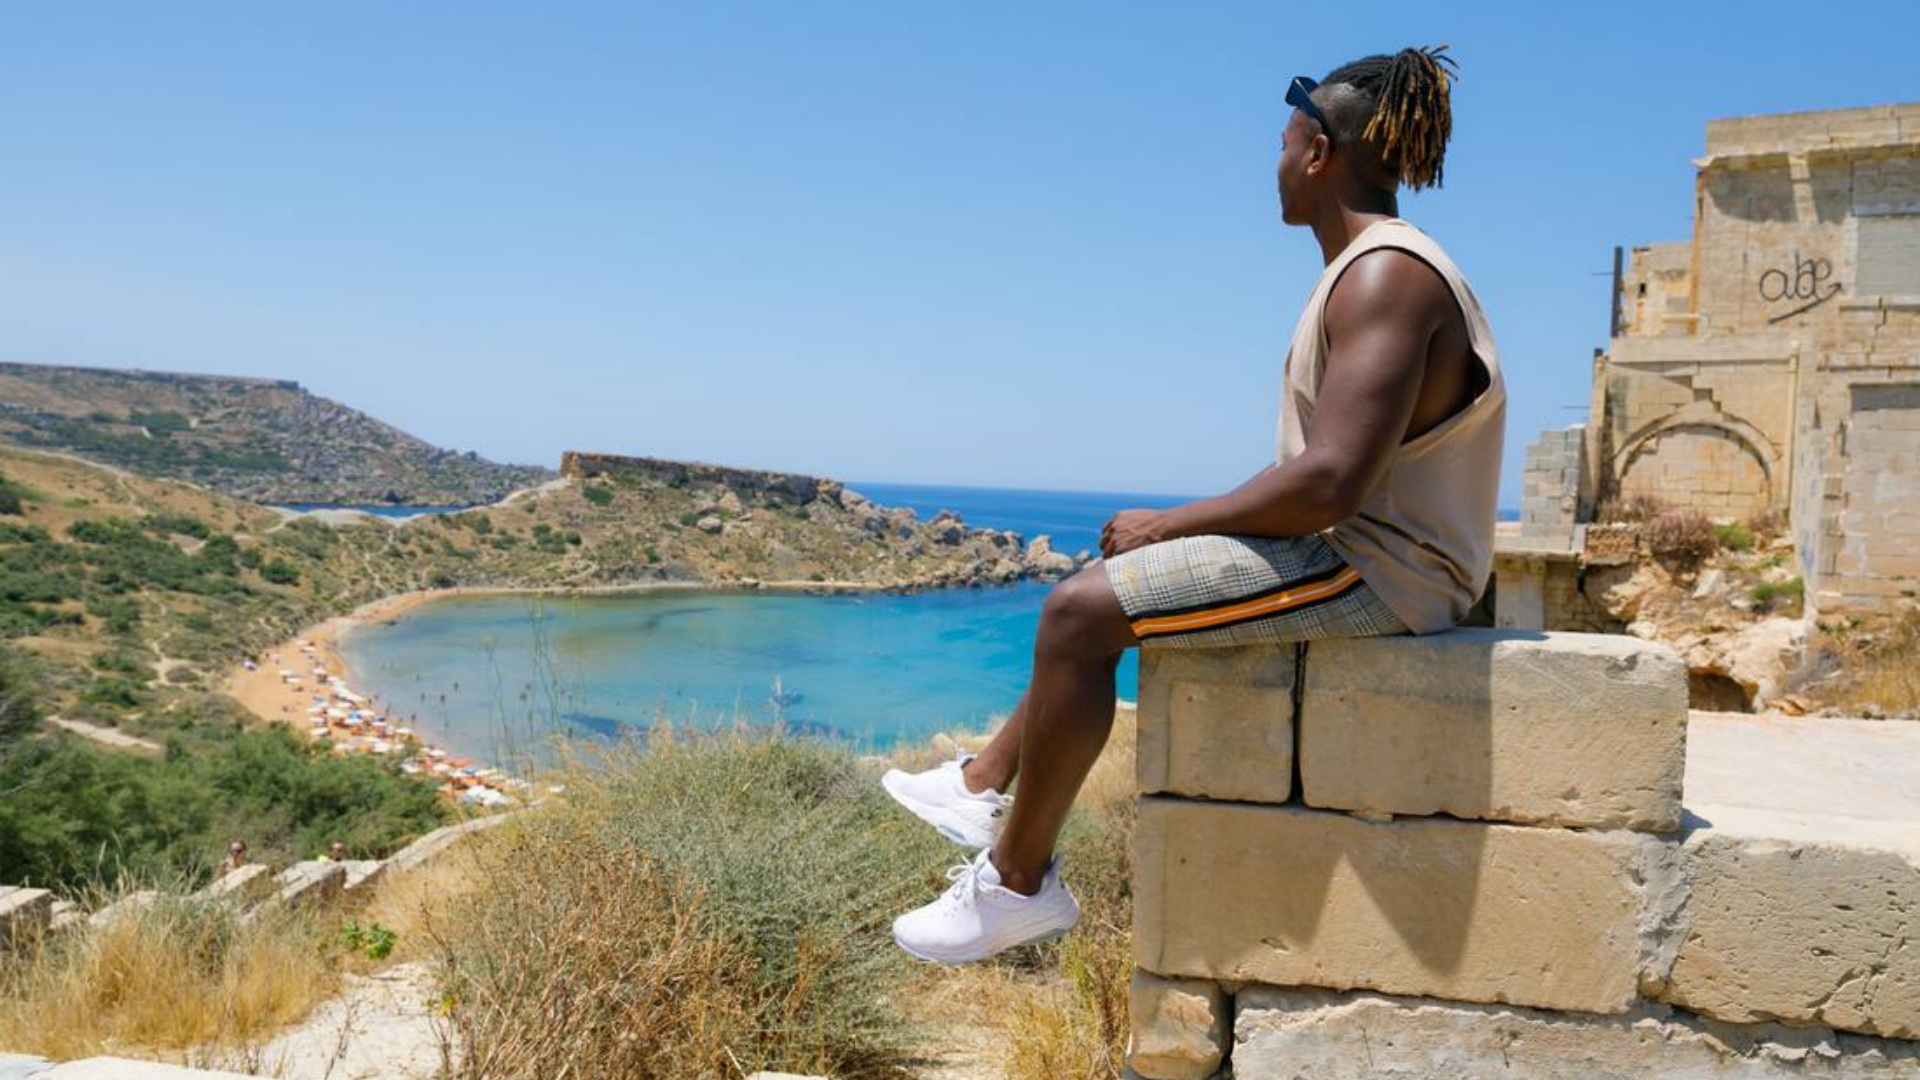 A young black tour guide sits on a stone wall overlooking the sea